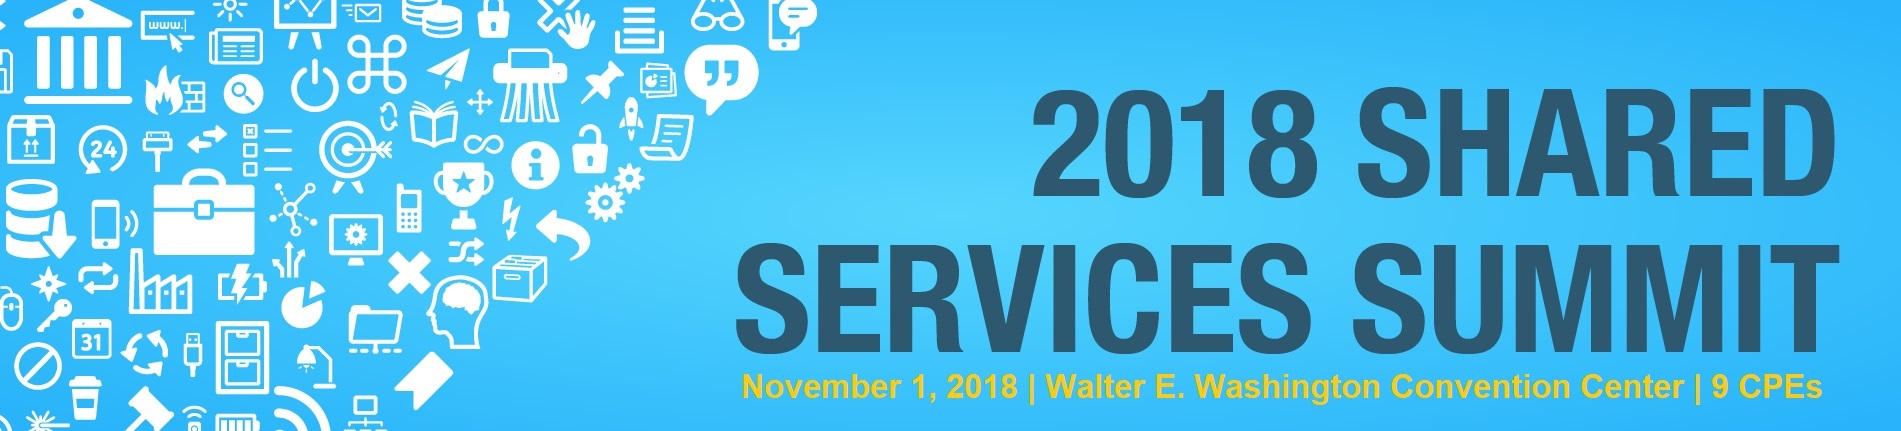 2018 Shared Services Summit